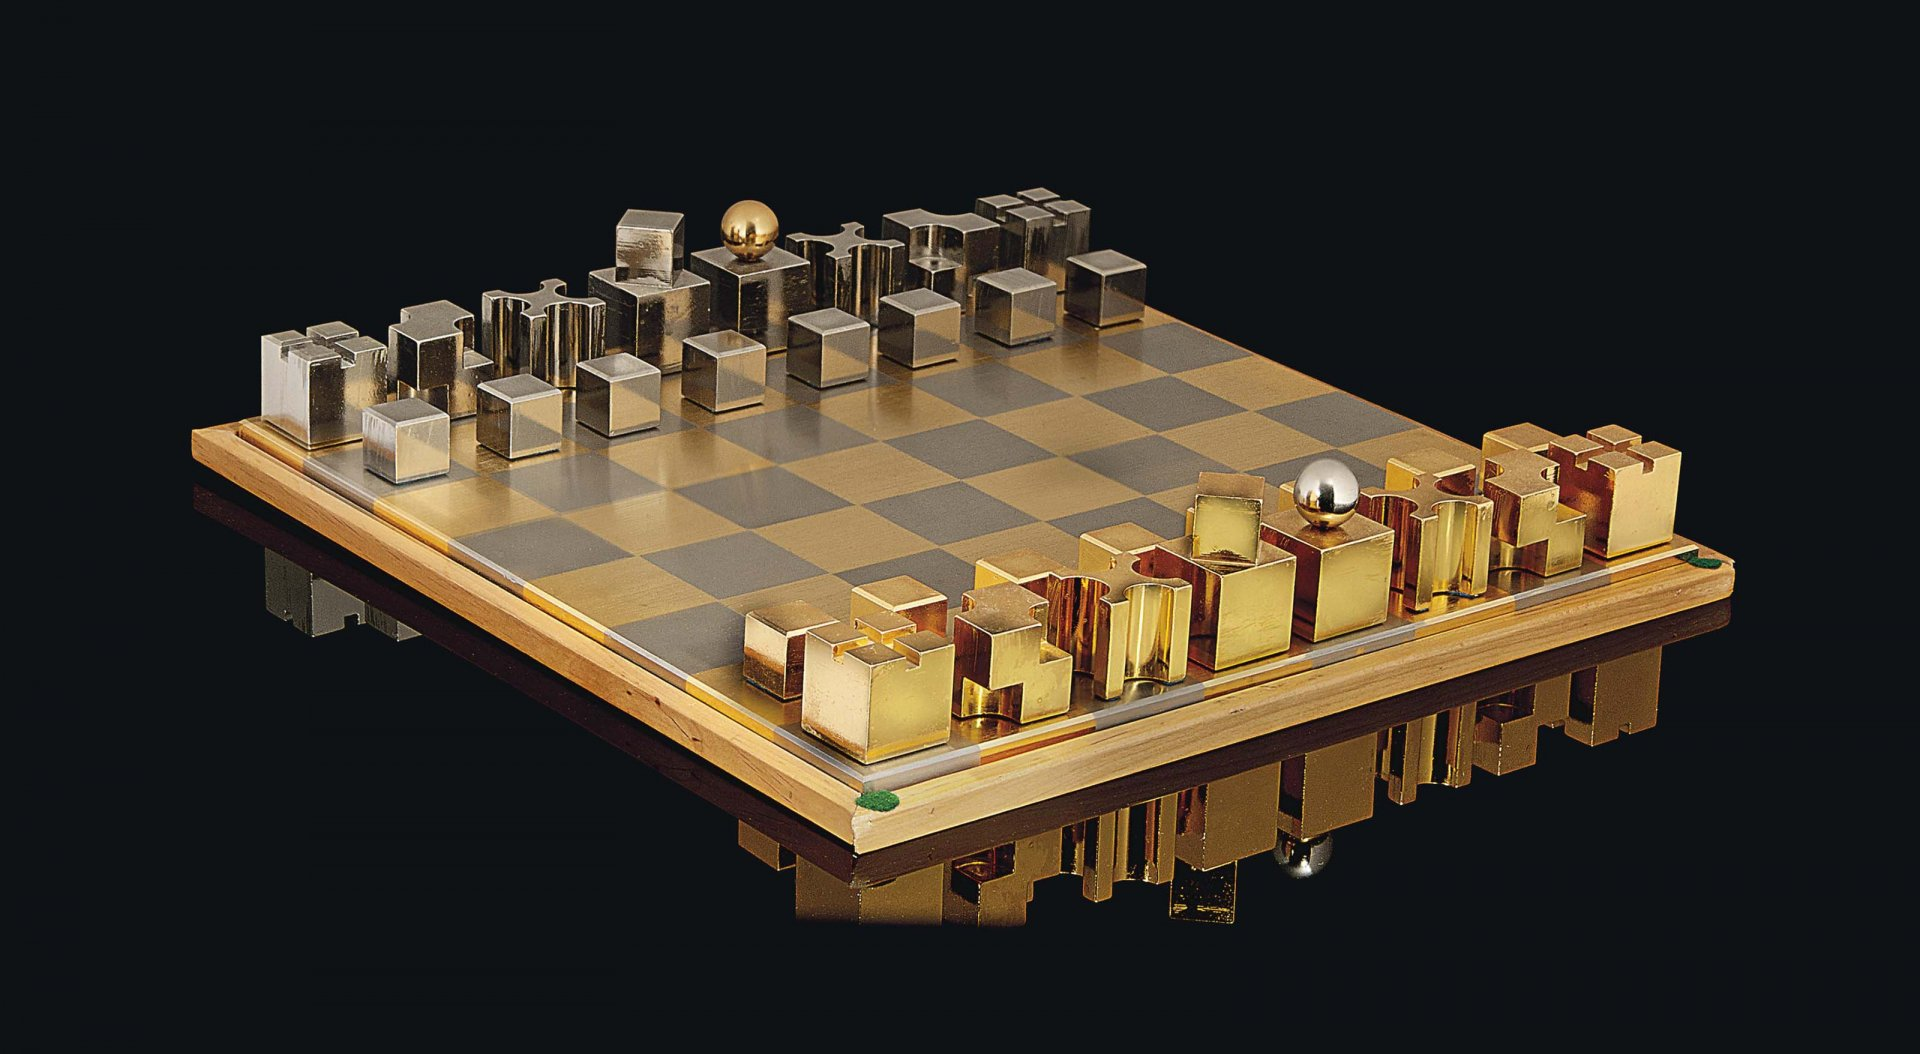 2013_CSK_09059_0586_000(an_austrian_silvered_and_gilt-metal_chess_set_and_board_after_carl_aub).jpg